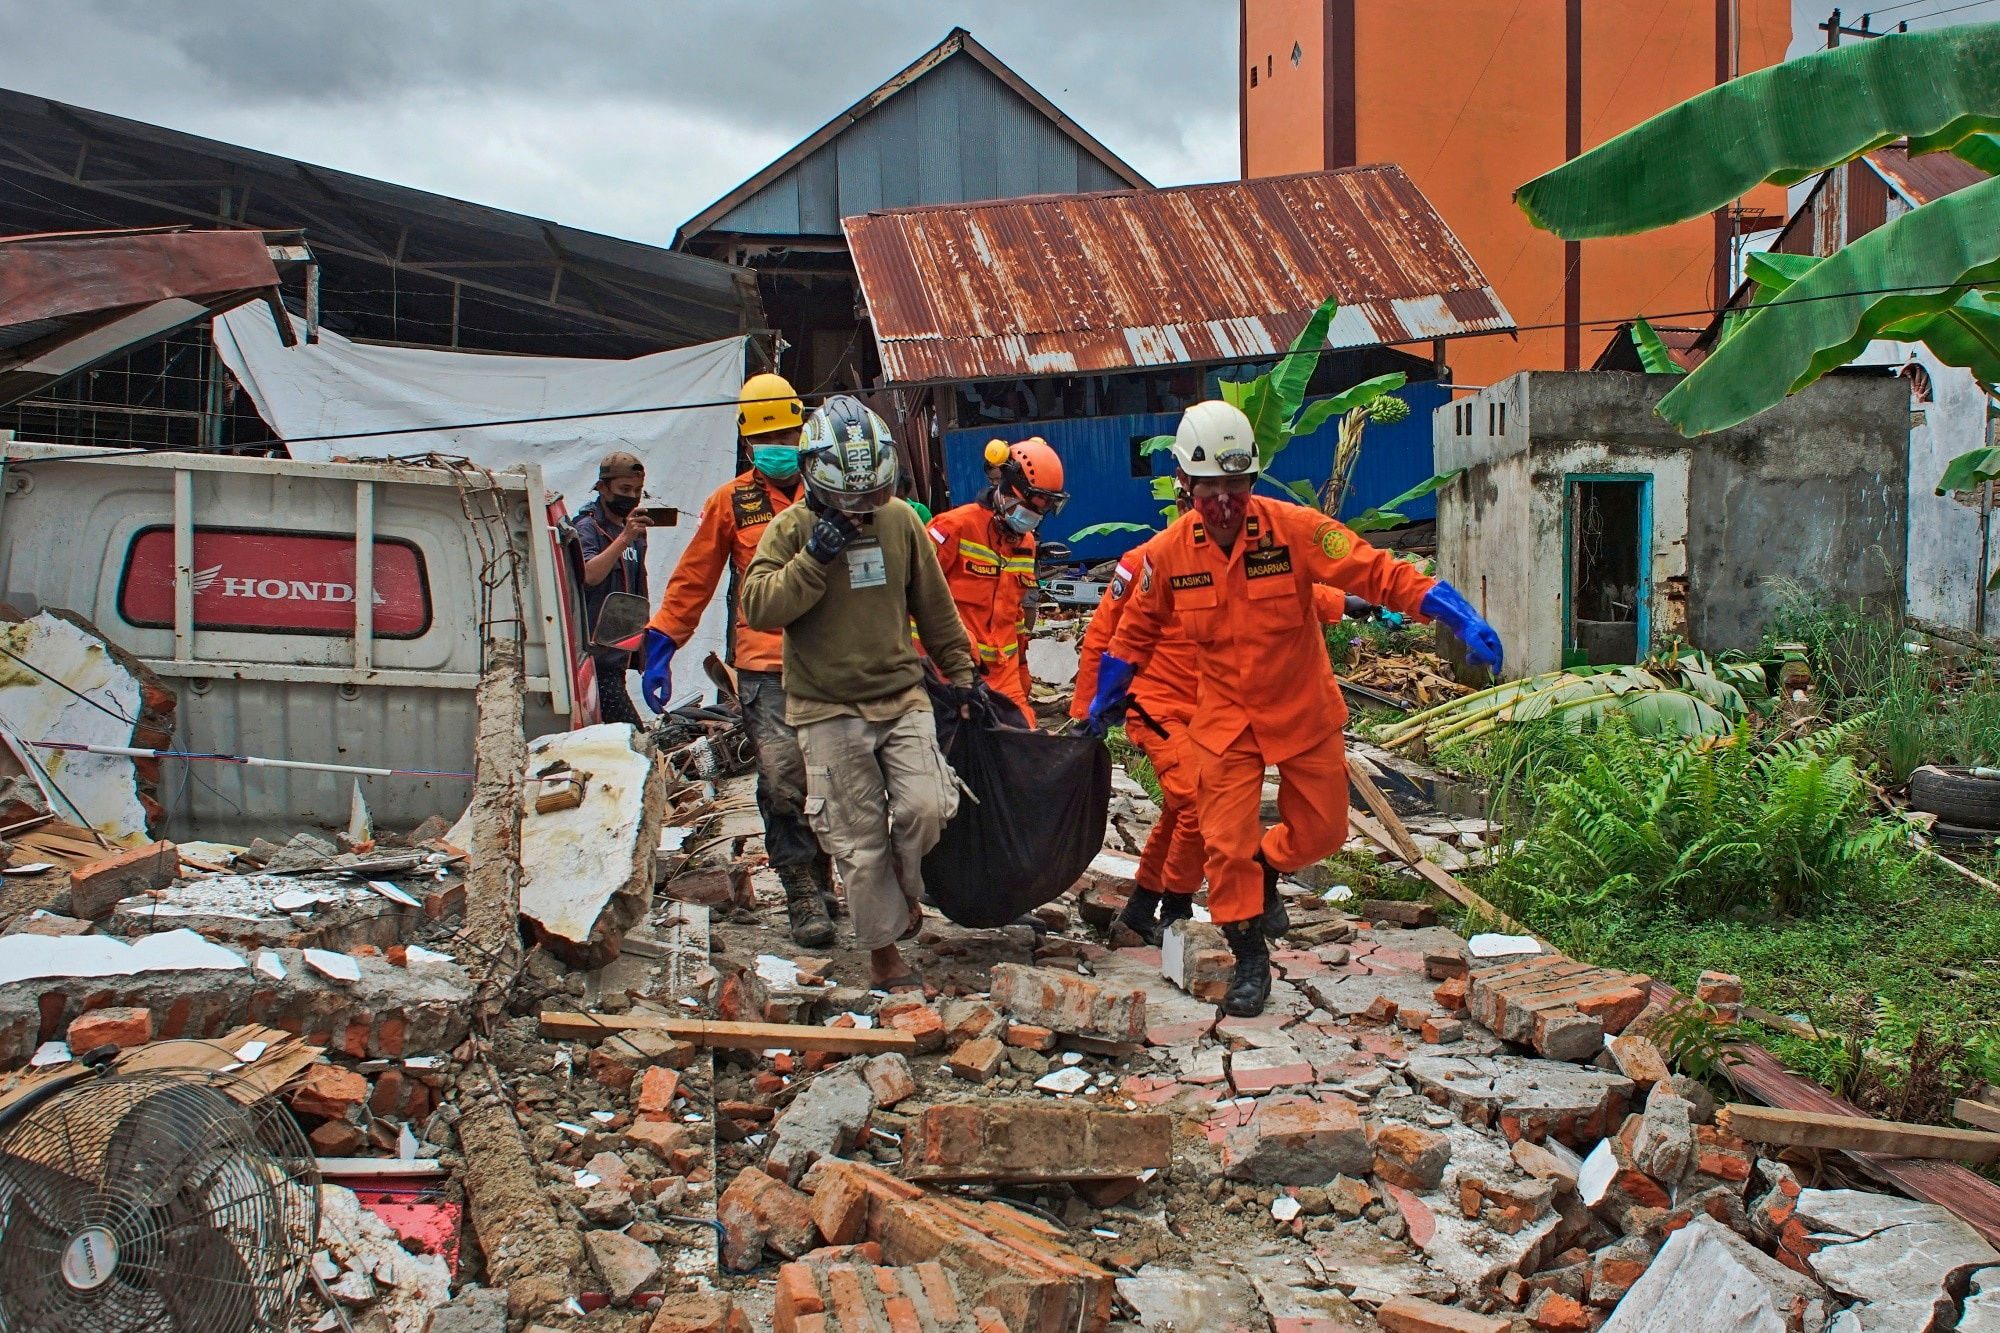 Recuers carry a body bag containing a victim of an earthquake in Mamuju, West Sulawesi, Indonesia.